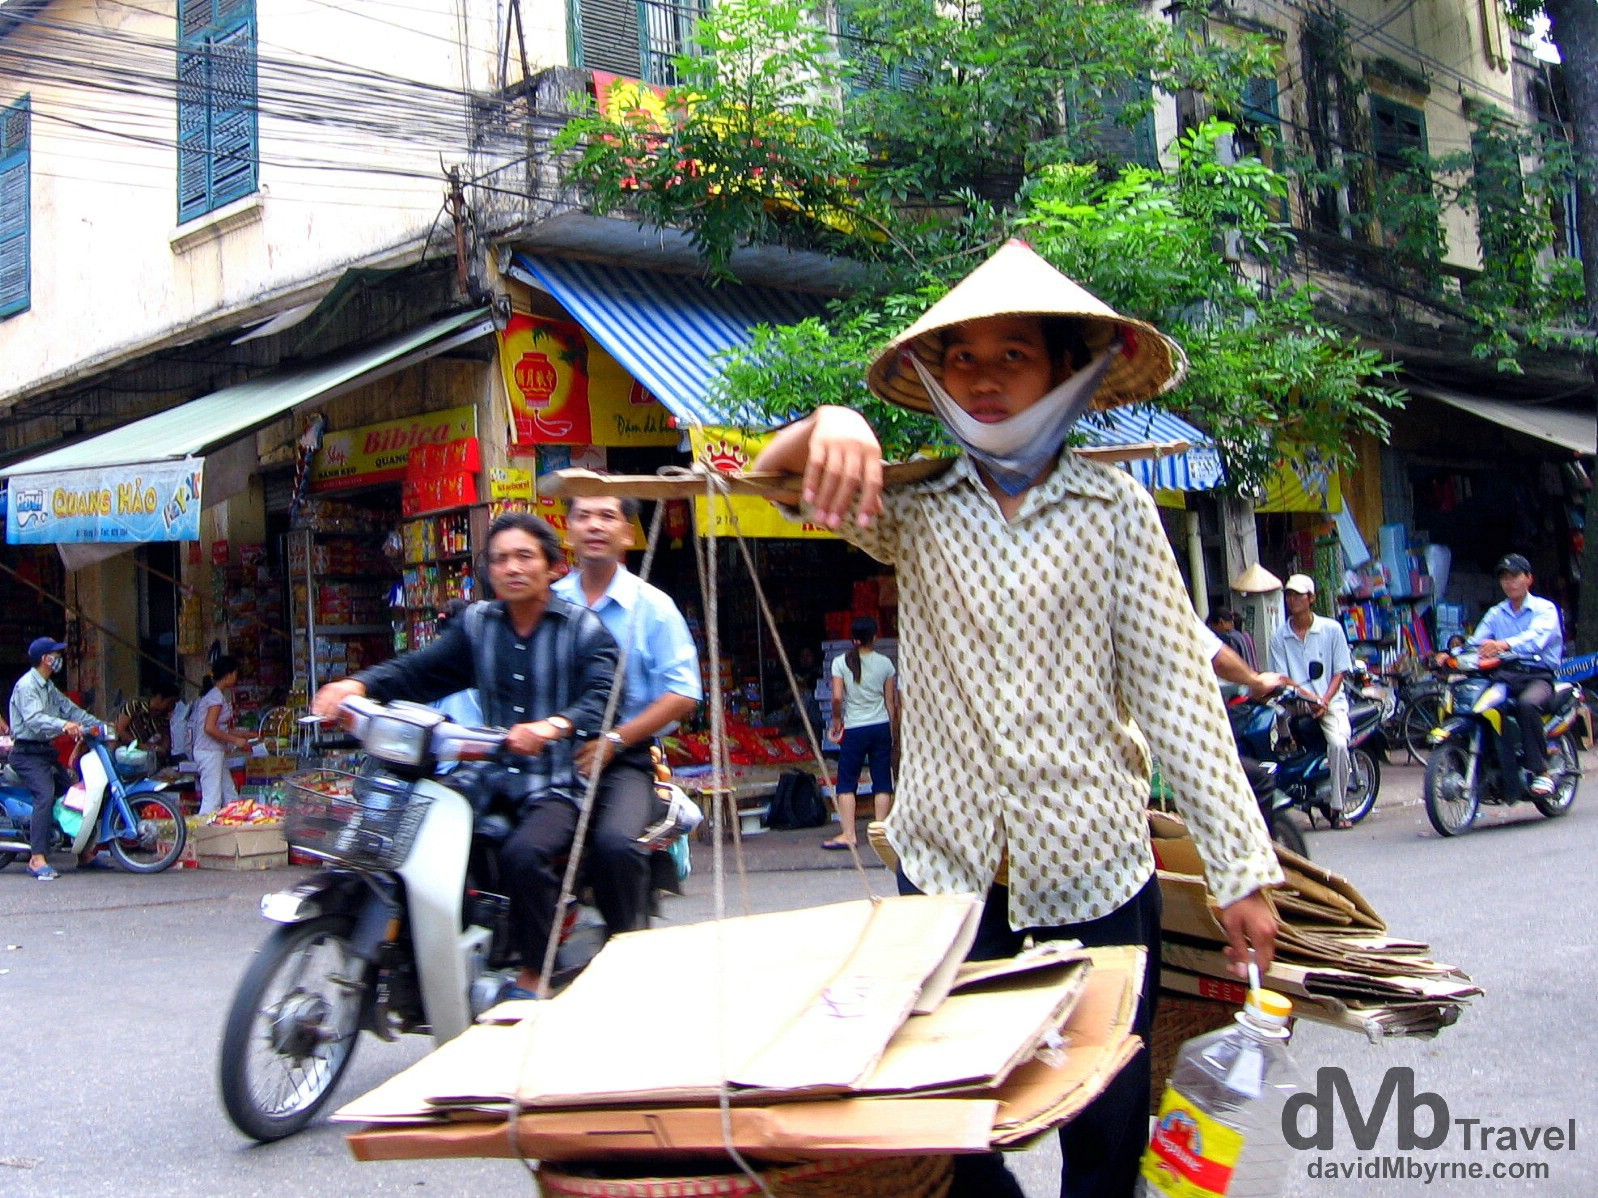 Activity on the streets of the Old Quarter of Hanoi, northern Vietnam. September 5th 2005.